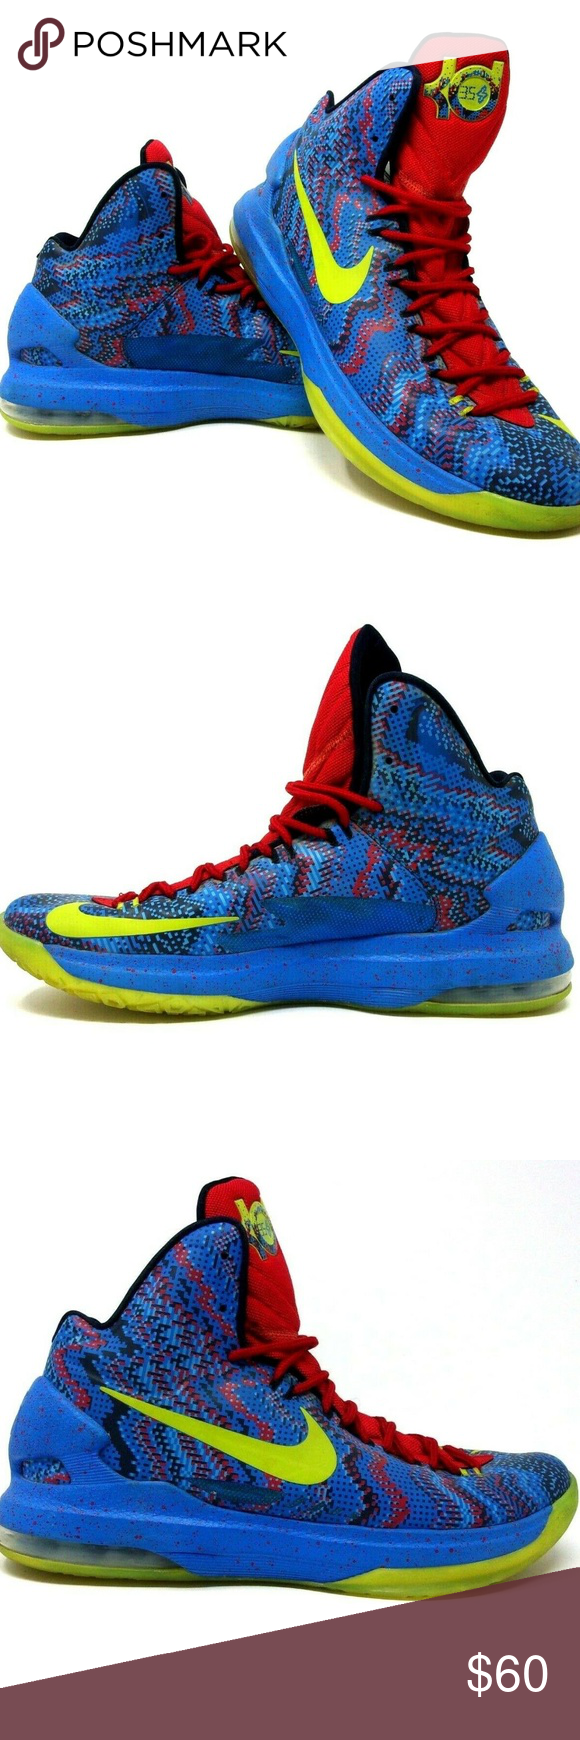 info for 22f33 c2923 Nike KD V Christmas Hyper Blue Atomic Green 5 Nike KD V Christmas Hyper Blue  Atomic Green 5 Size 11.5 2012 554988 401 Nike Shoes Athletic Shoes